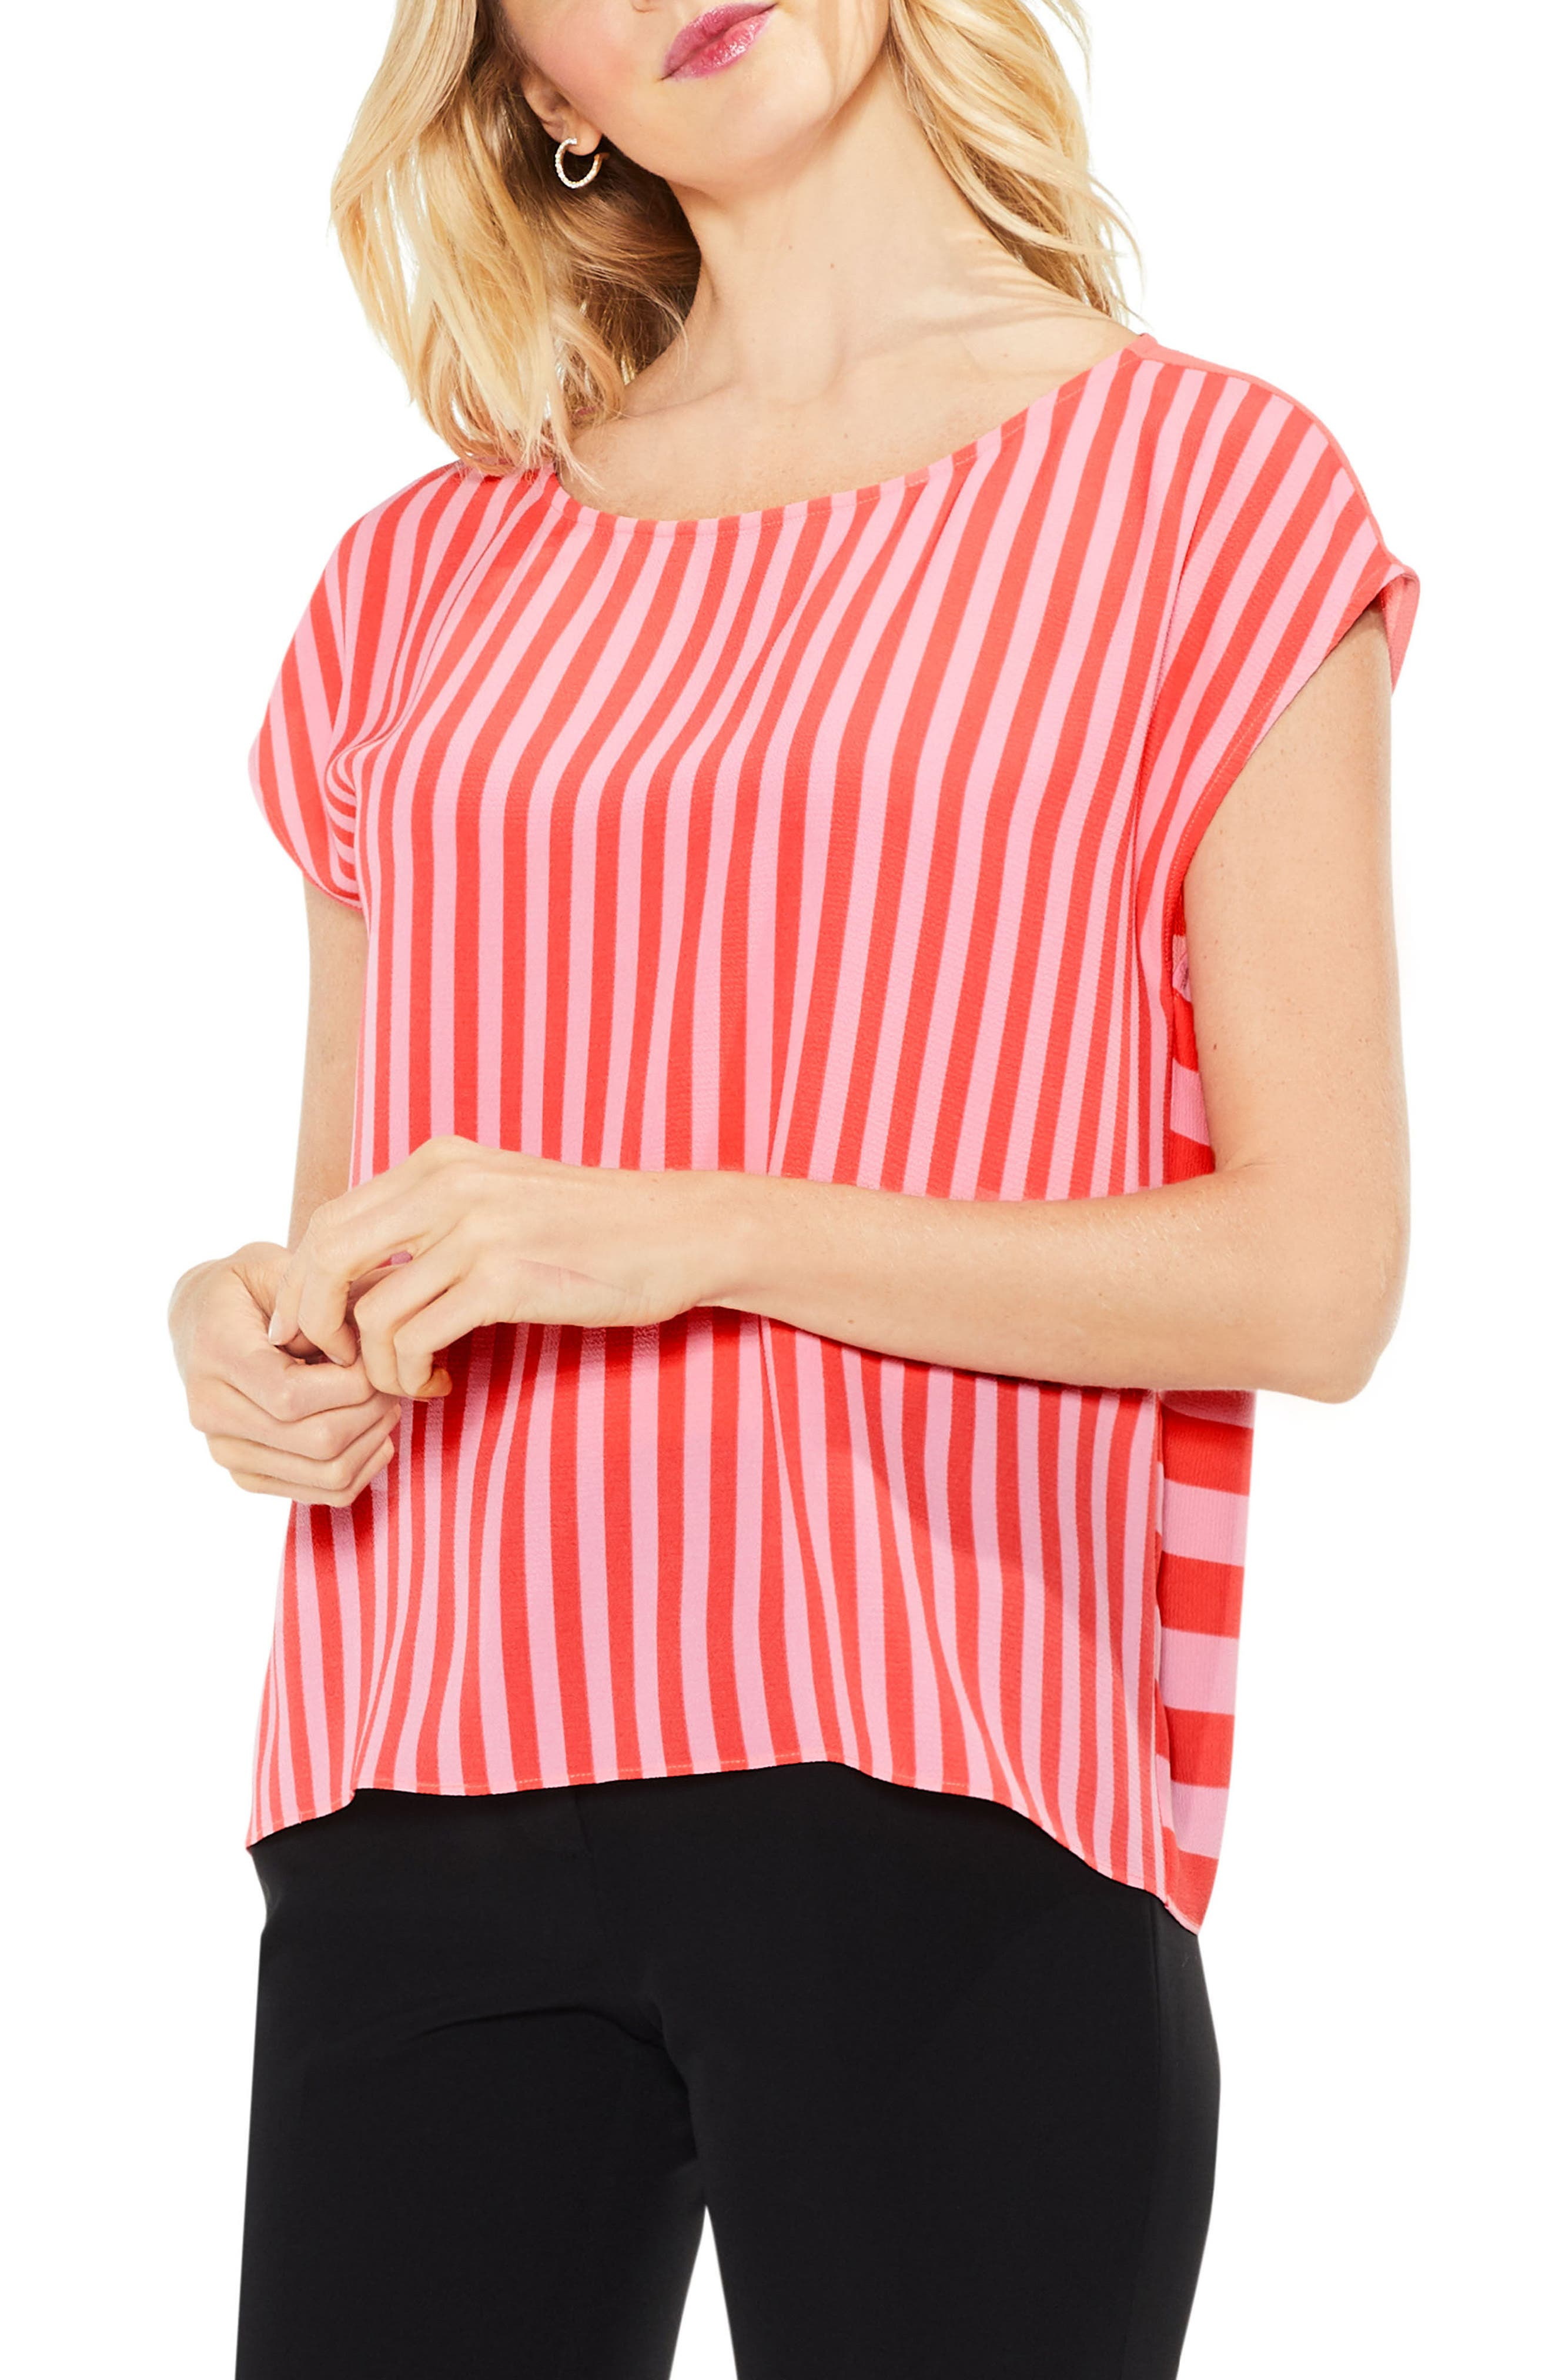 Main Image - Vince Camuto Mixed Stripe Top